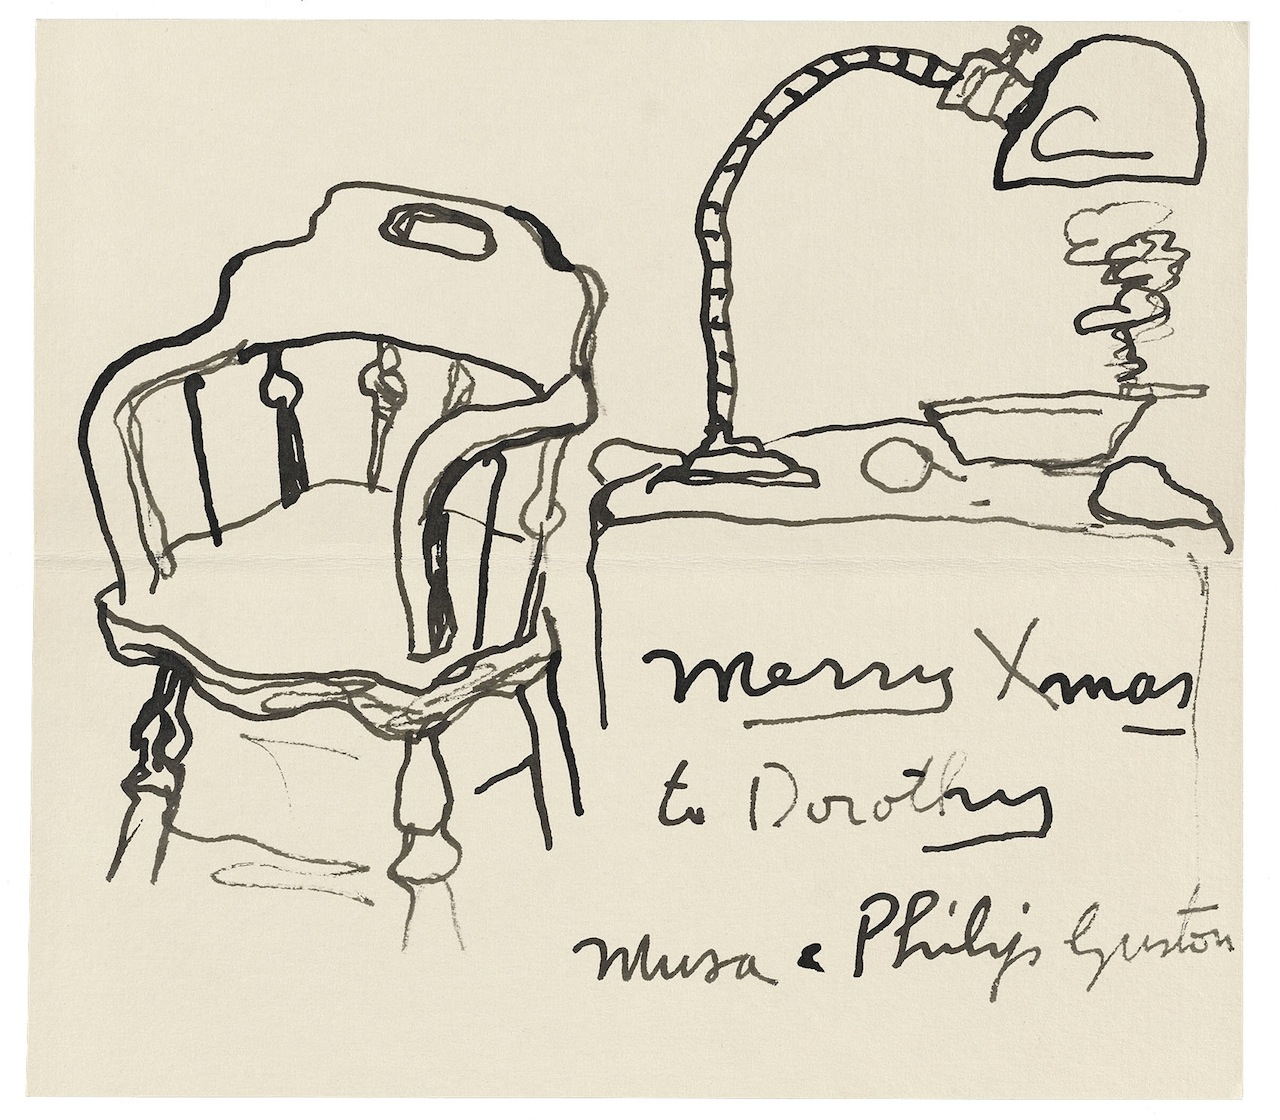 """Philip Guston, """"To Dorothy Miller"""" (c. 1972), Watercolor, Dorothy C. Miller papers, ca. 1912–92, Archives of American Art, Smithsonian Institution, © 2014 The Estate of Philip Guston"""